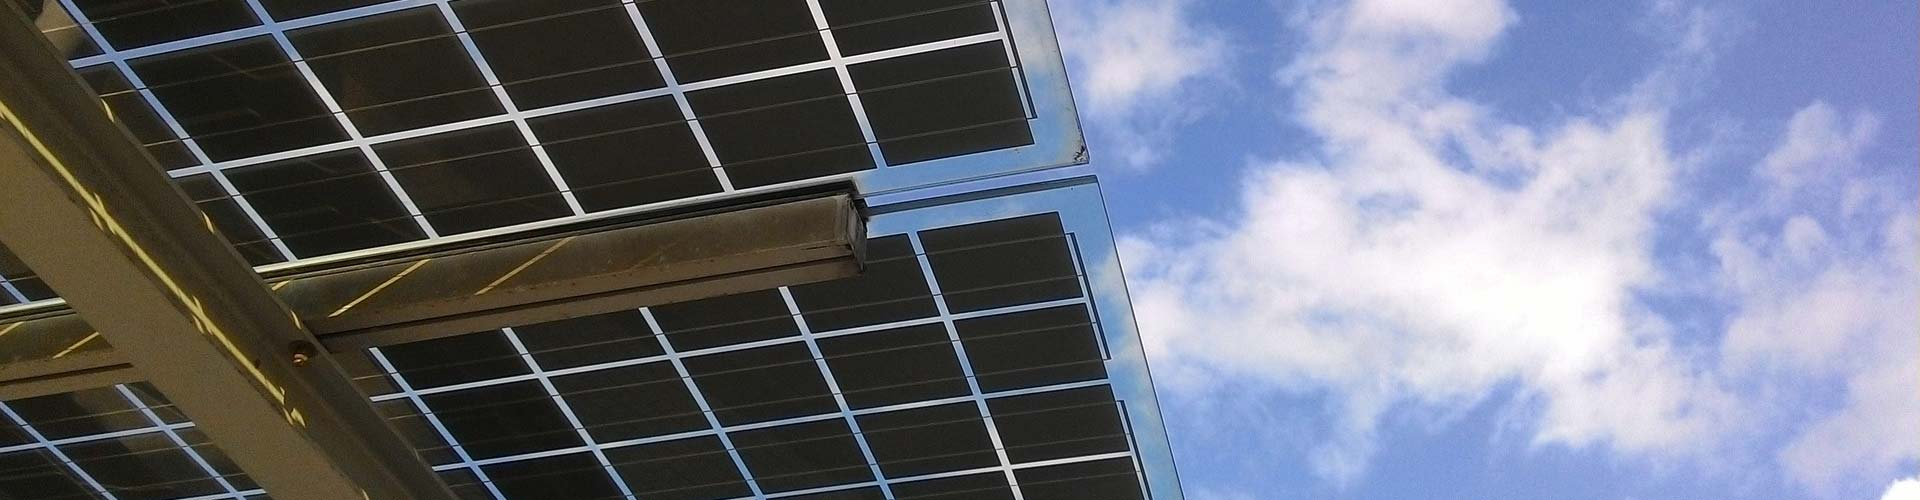 How to Go Green With Solar Power